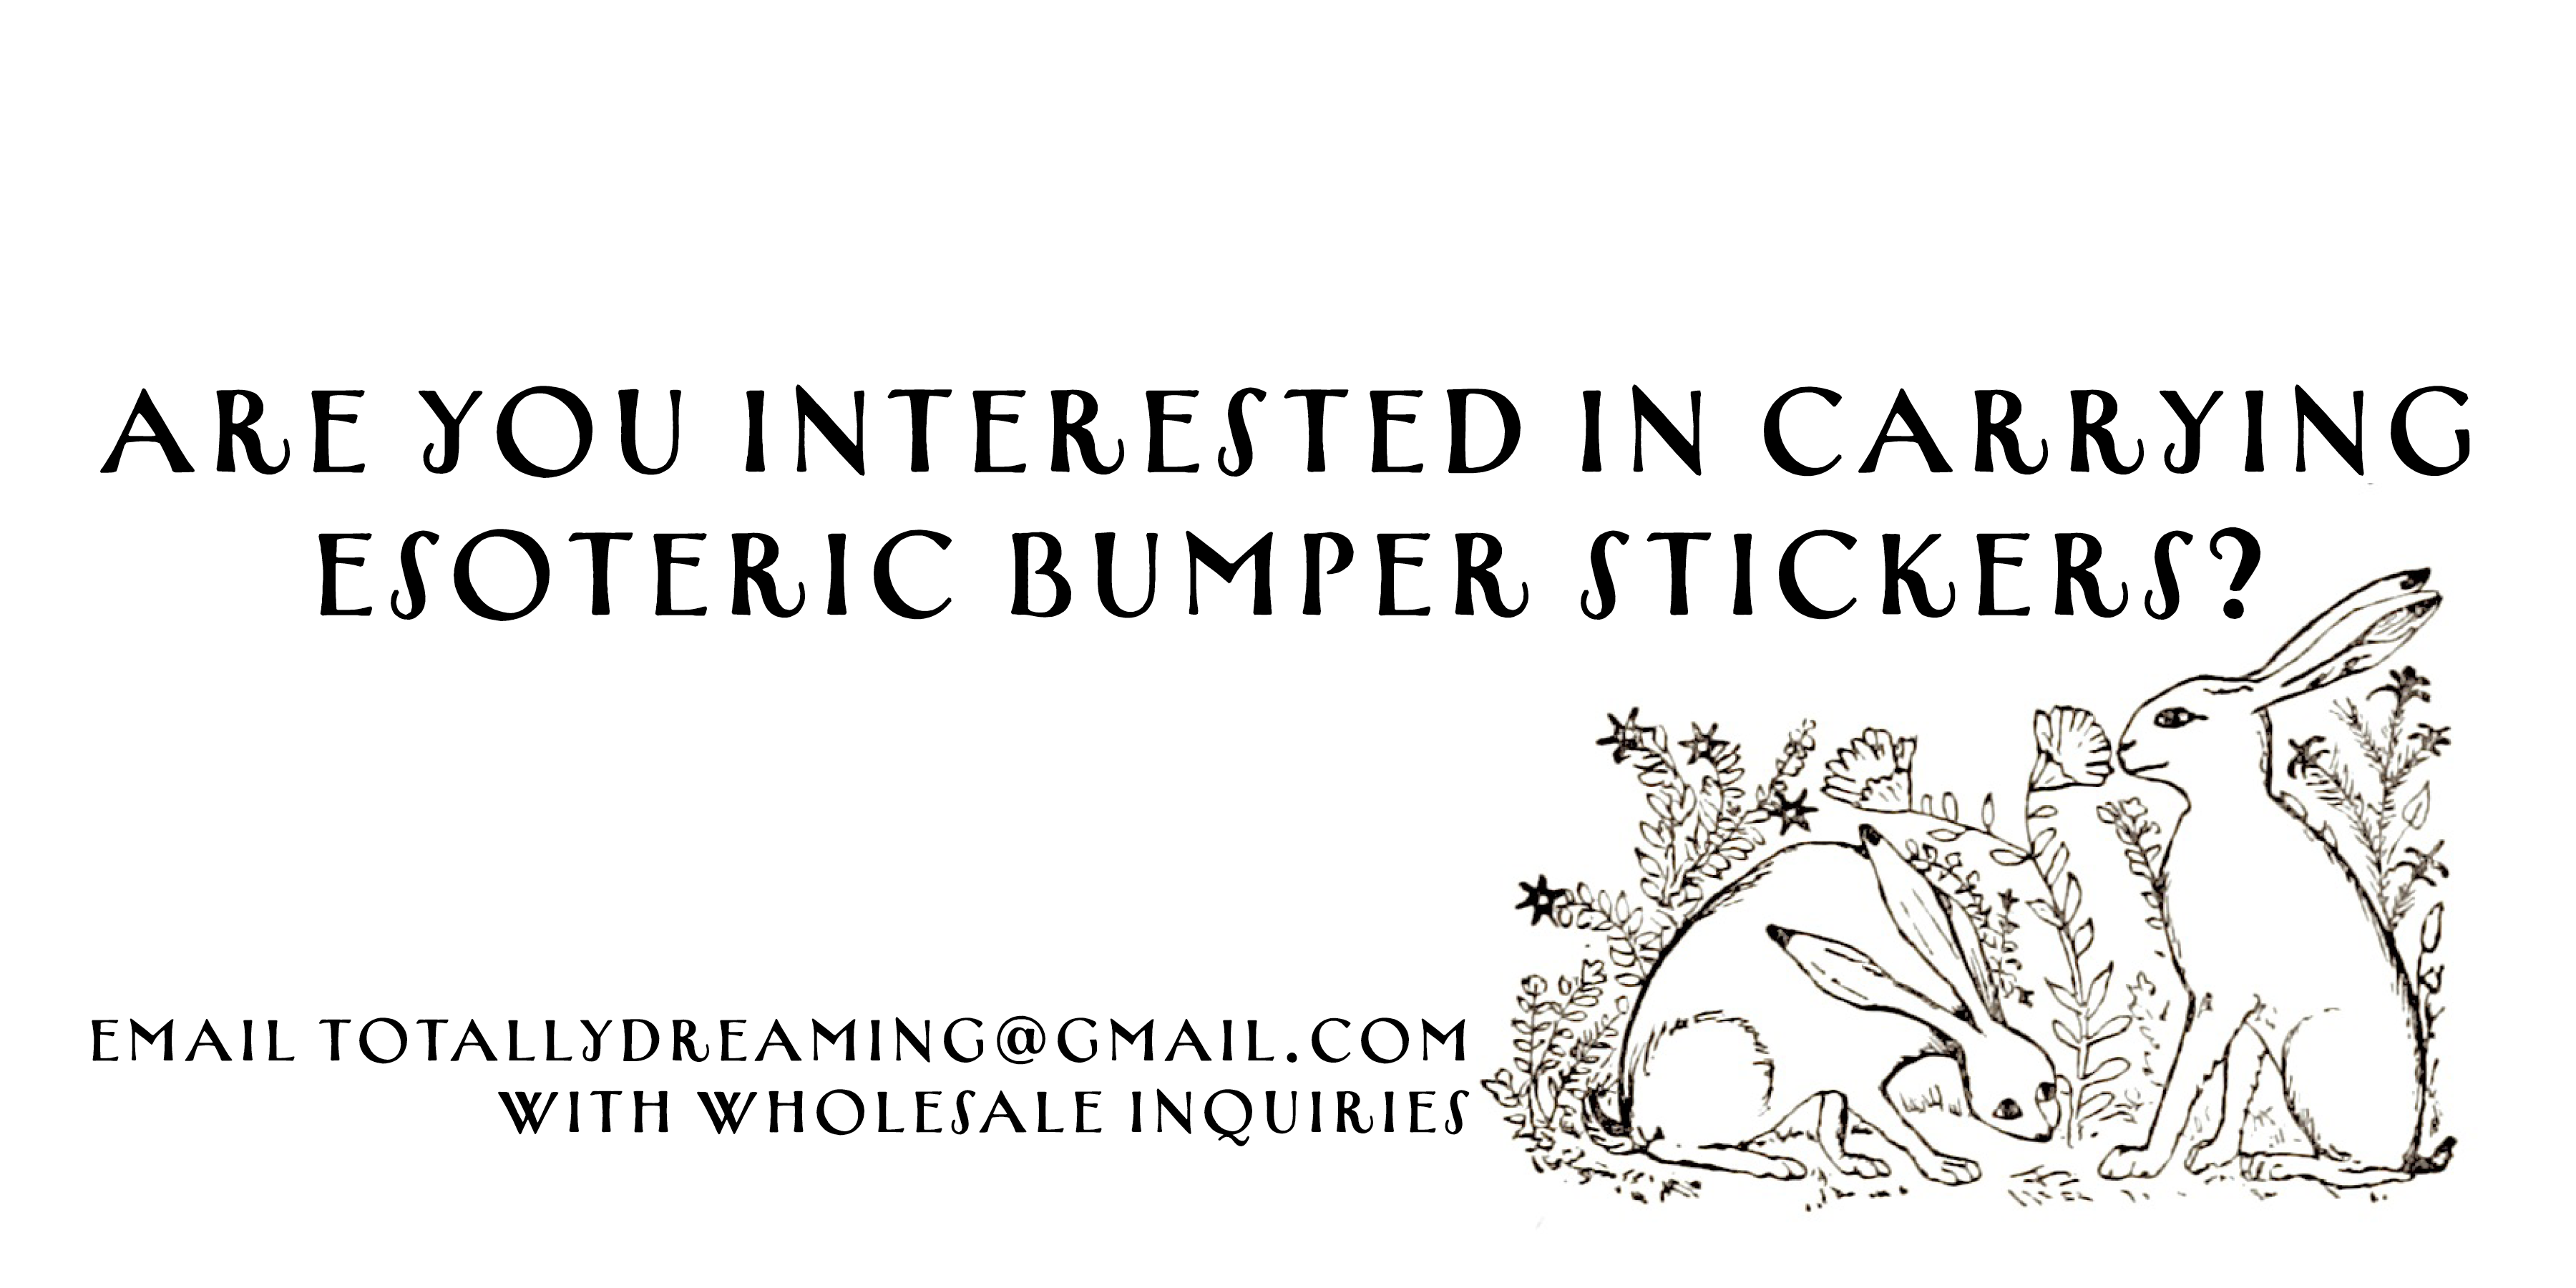 email totallydreaming@gmail.com for wholesale inquiries